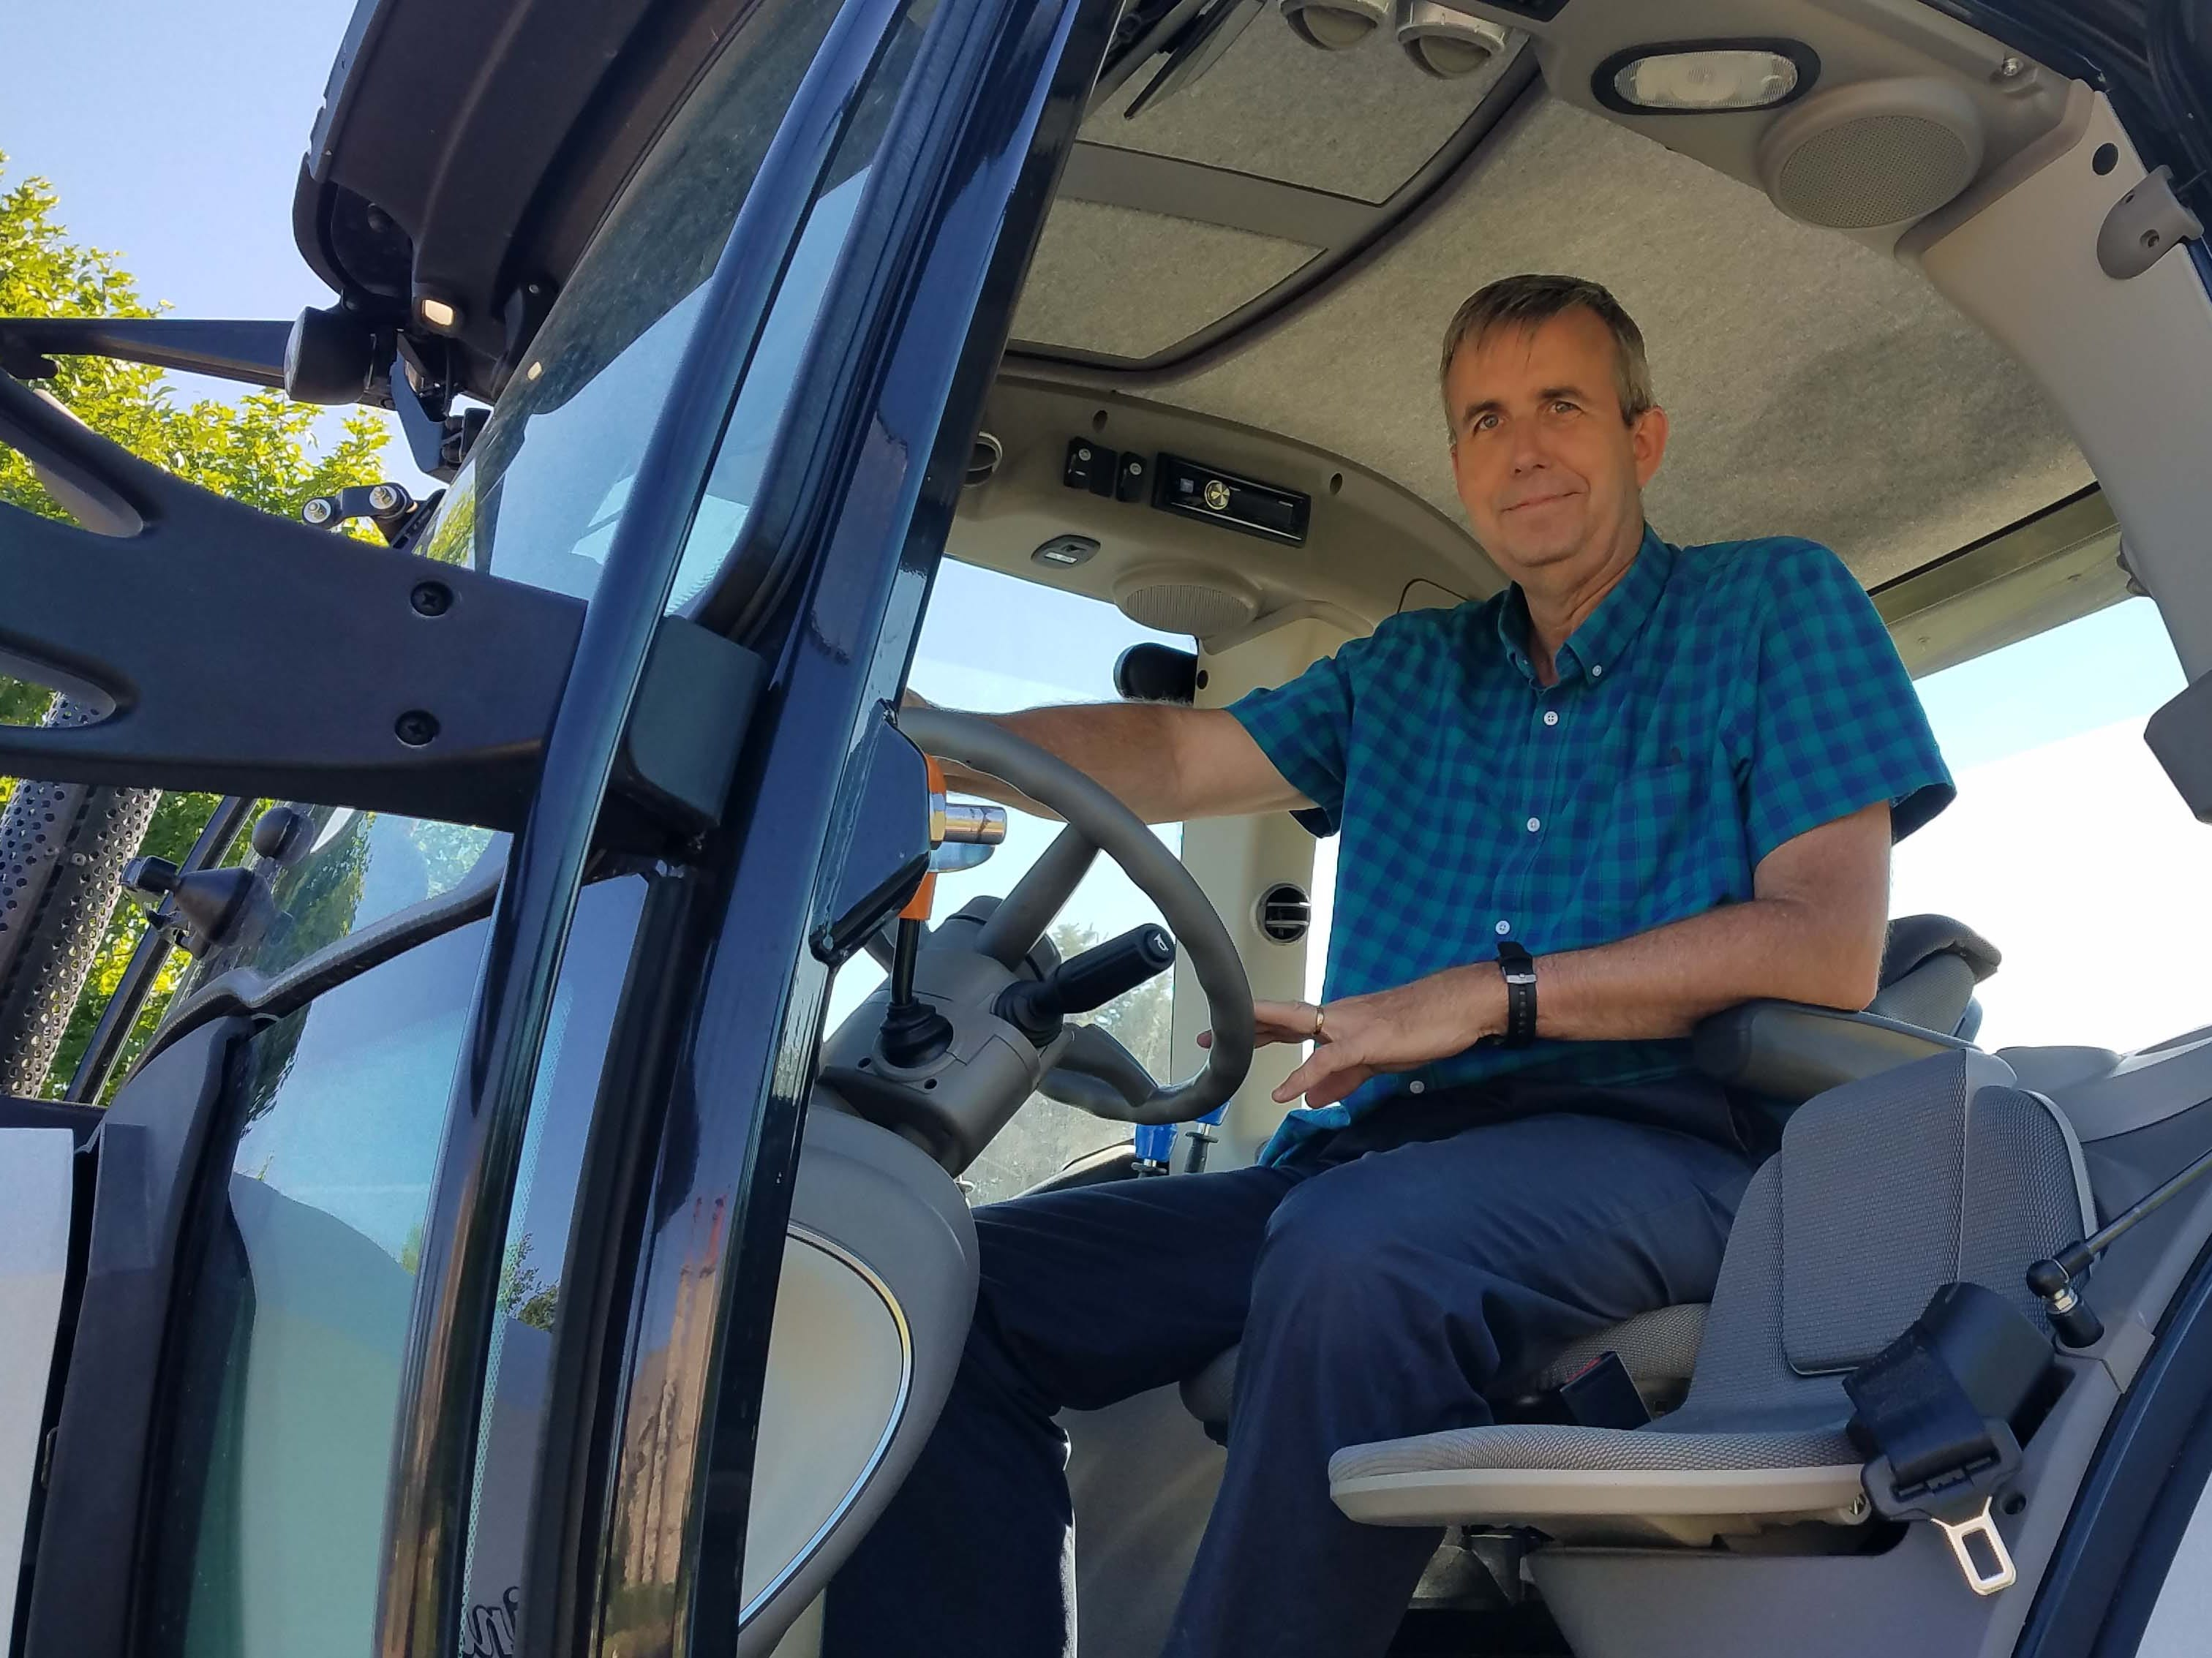 Seats two - just like the Aventador. Detroit News auto critic Henry Payne saddles up the Lamborghini Nitro tractor for farm duty.